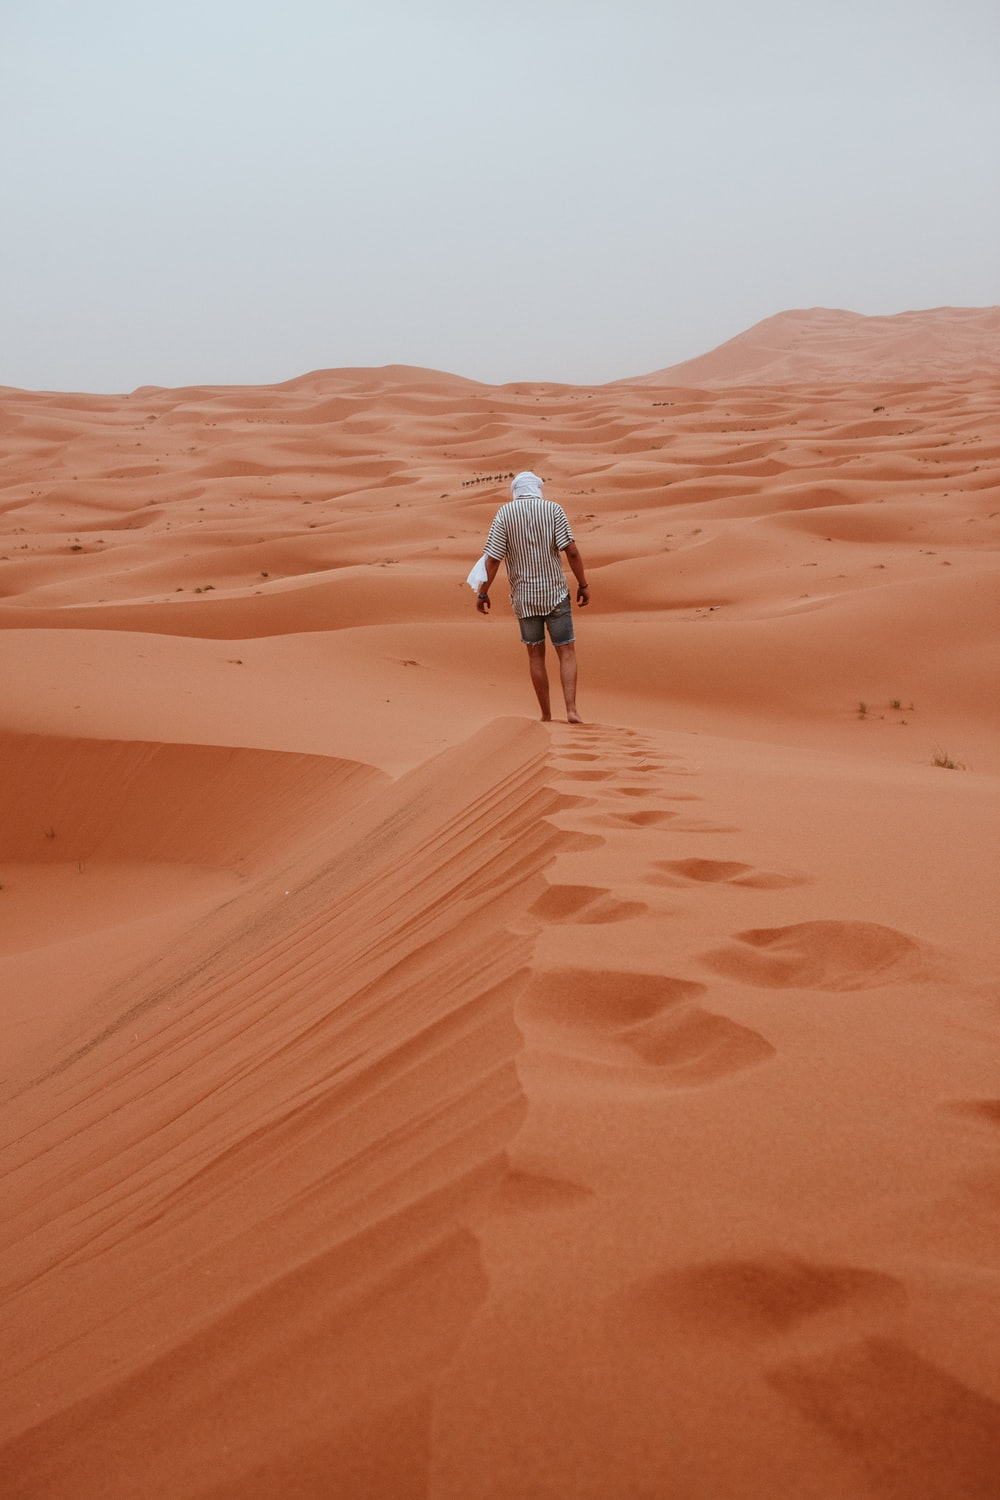 man wearing gray shirt walking on desert